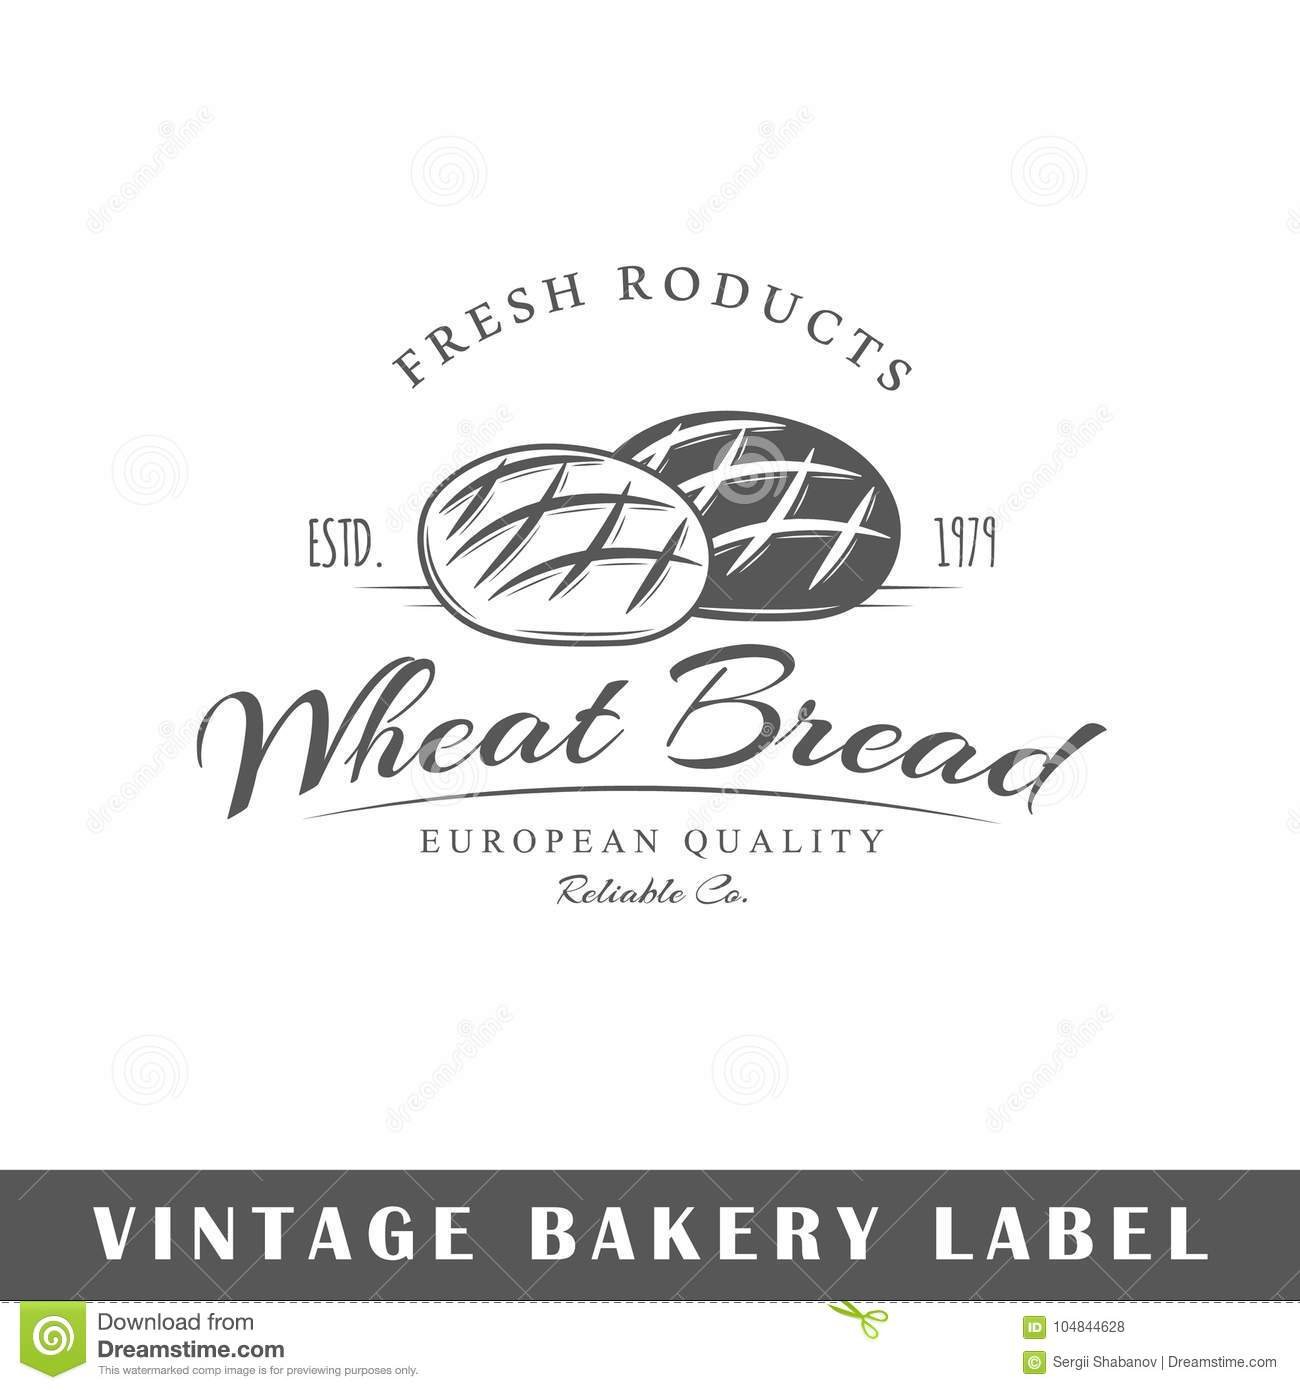 Bakery label isolated on white background design element template for logo signage branding design vector illustration